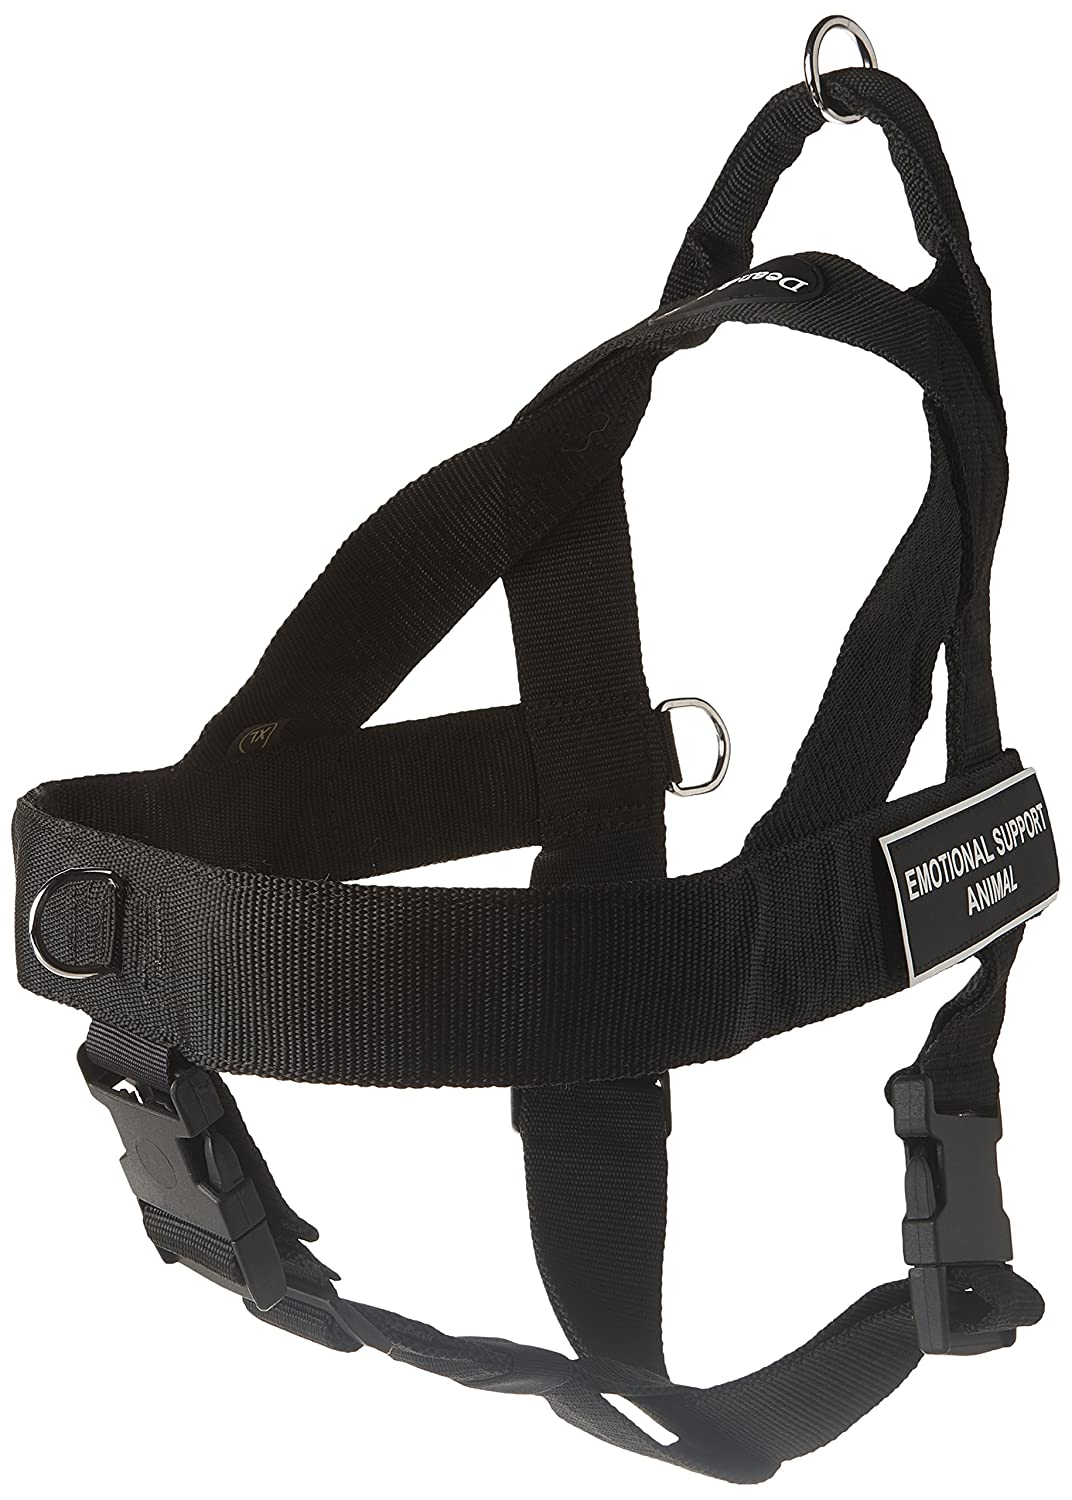 Dean & Tyler Universal No Pull Dog Harness, Emotional Support Animal, X-Large, Fits Girth Size  36-Inch to 47-Inch, Black